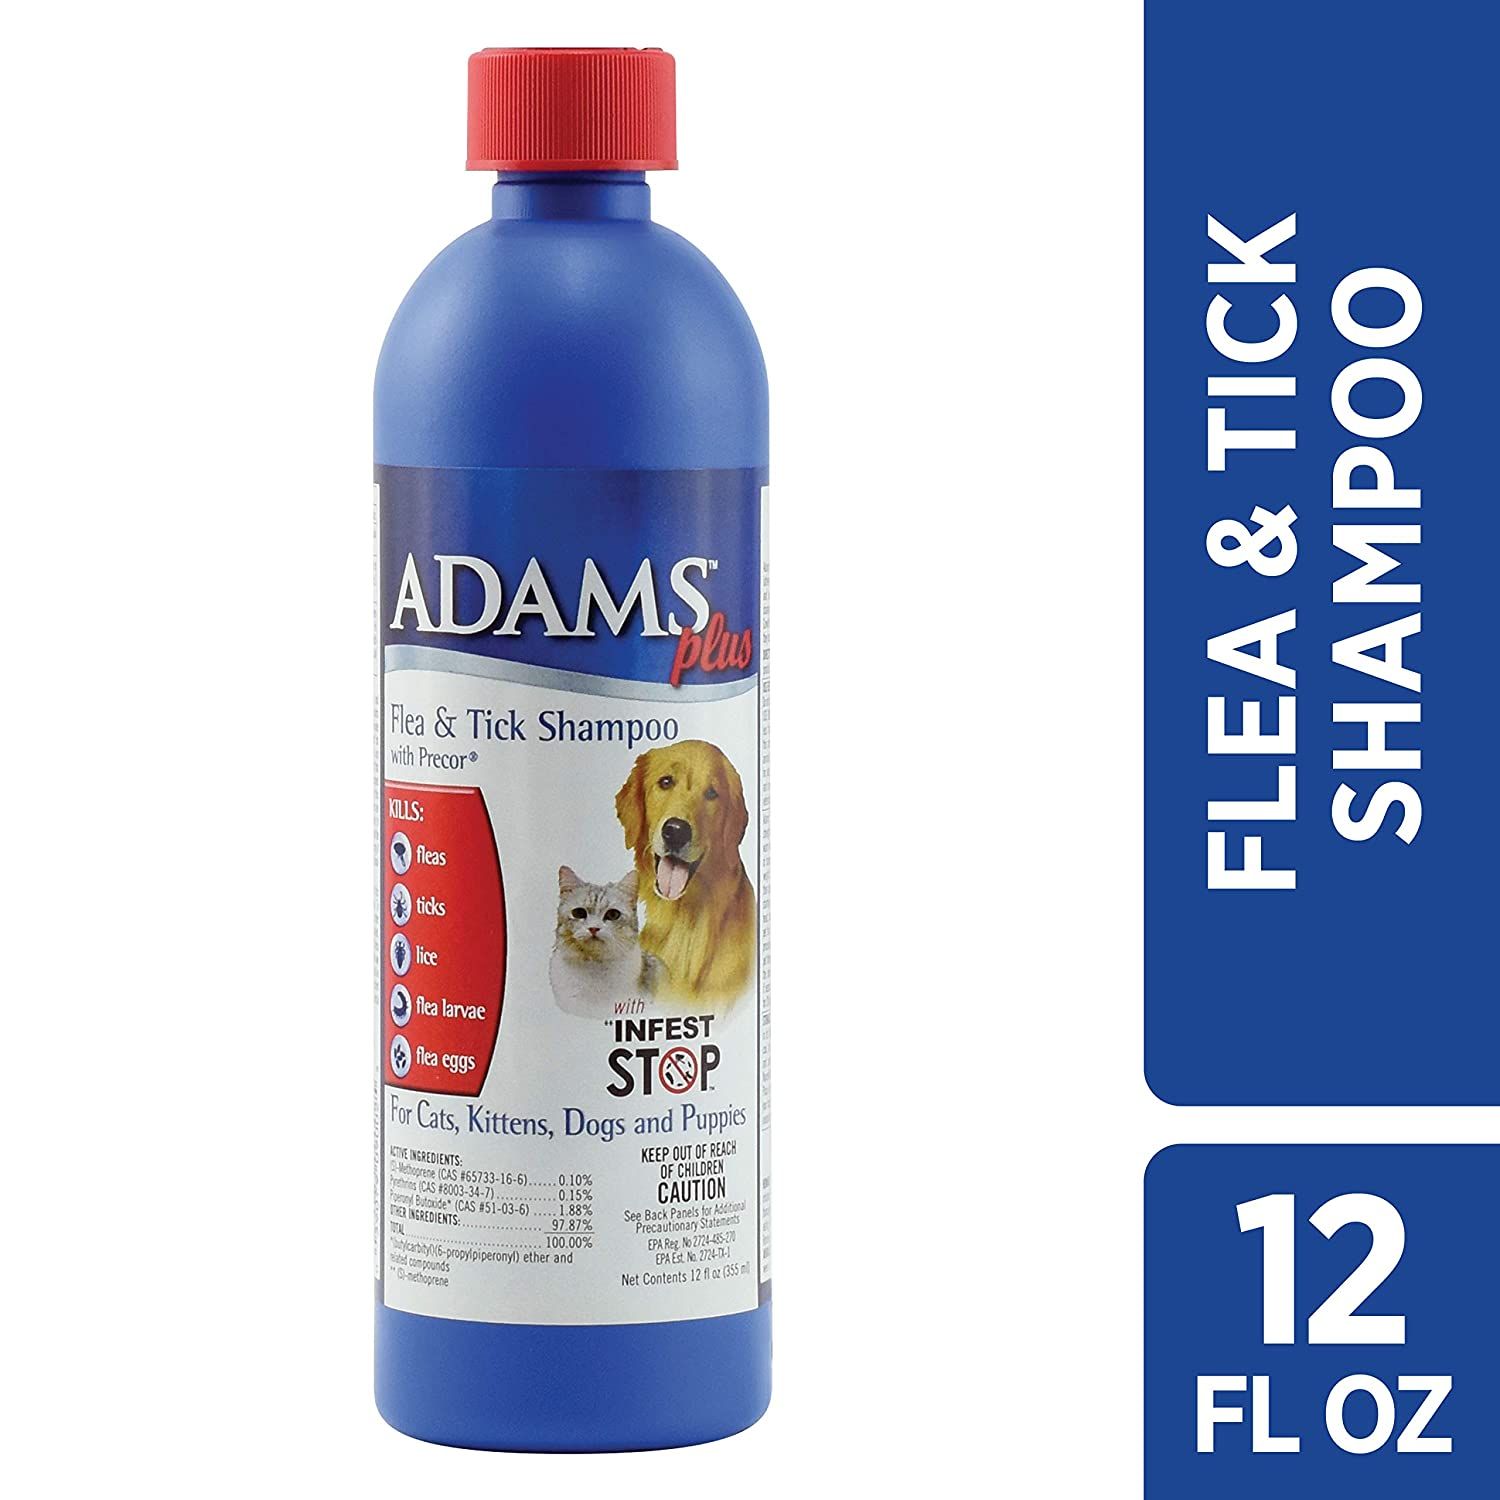 Adams Plus Flea & Tick Shampoo with Precor for Dogs and Cats